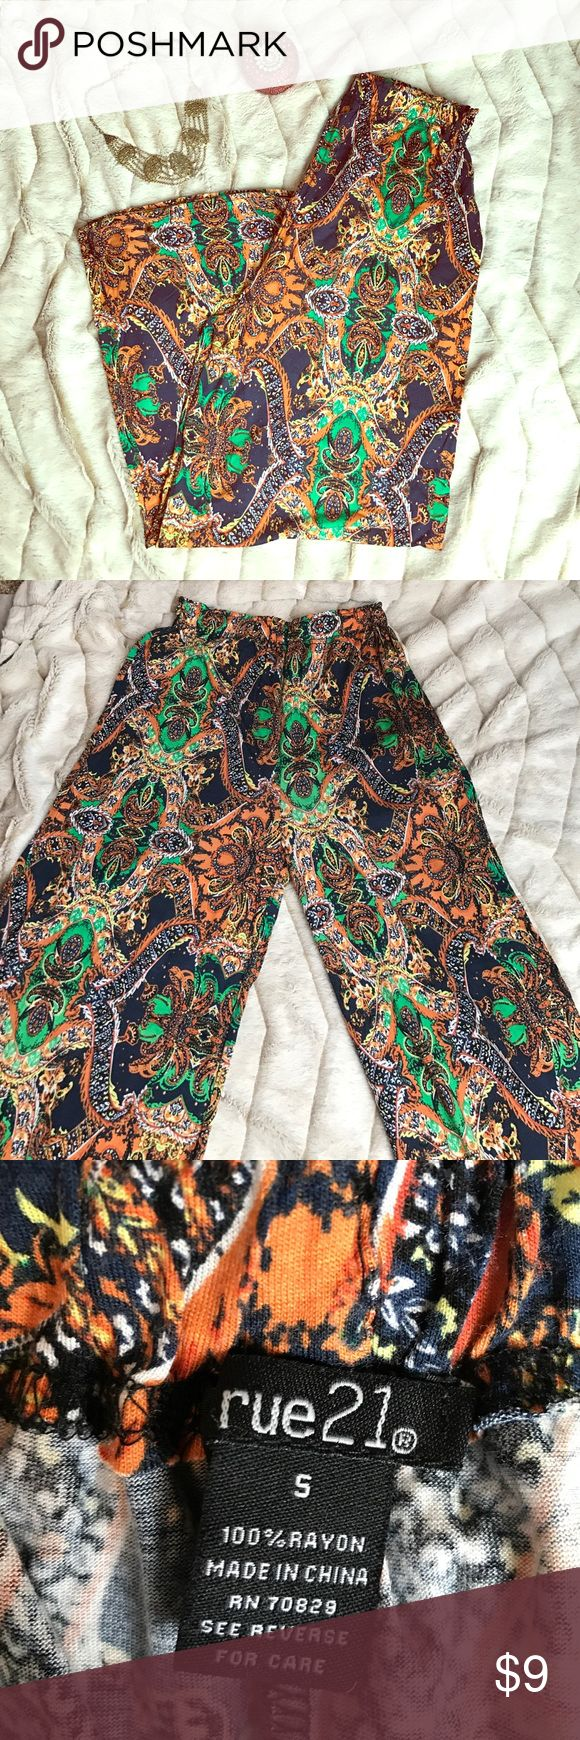 Printed Palazzo Pants Bohemian palazzo pants. Stretchy, comfy, and cute! A little short on me, and I'm 5'5 unless I wear them on my hips then they are floor length. If I wear around my waist they are short. Just a heads up if you're my height or taller!! Rue 21 Pants